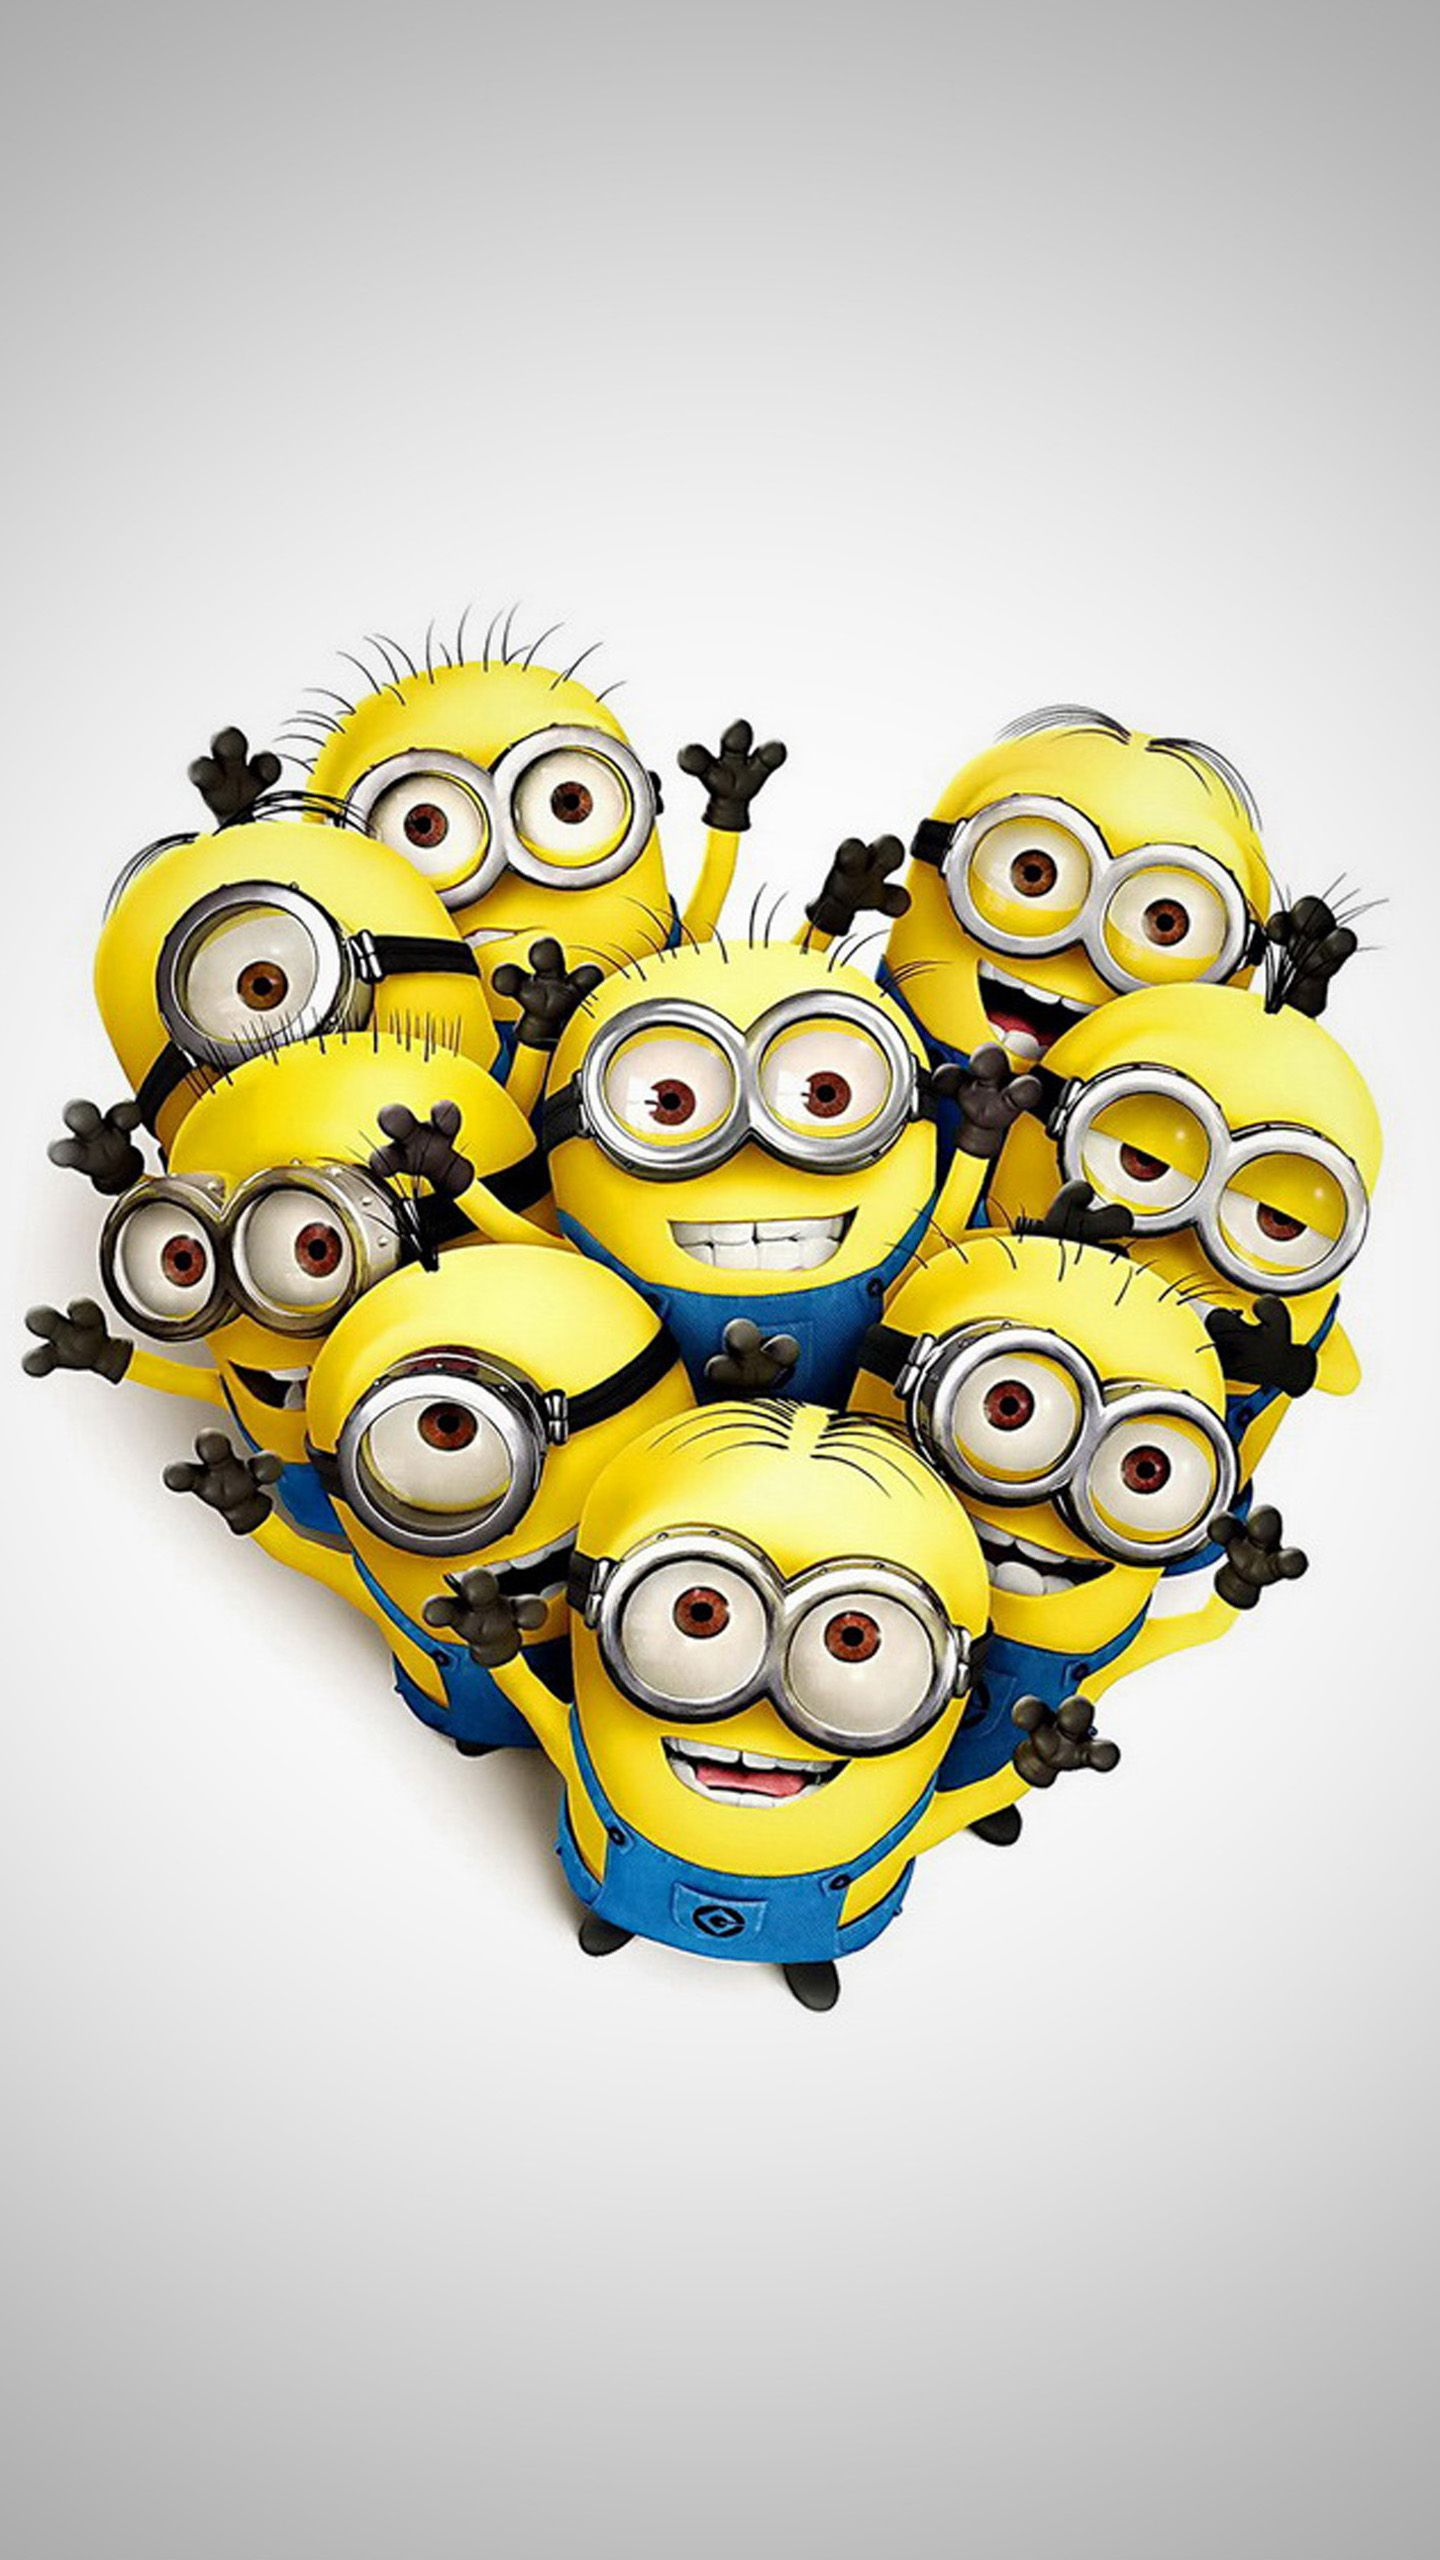 Best Minion Wallpaper Android for LG V10 in 1440x2560